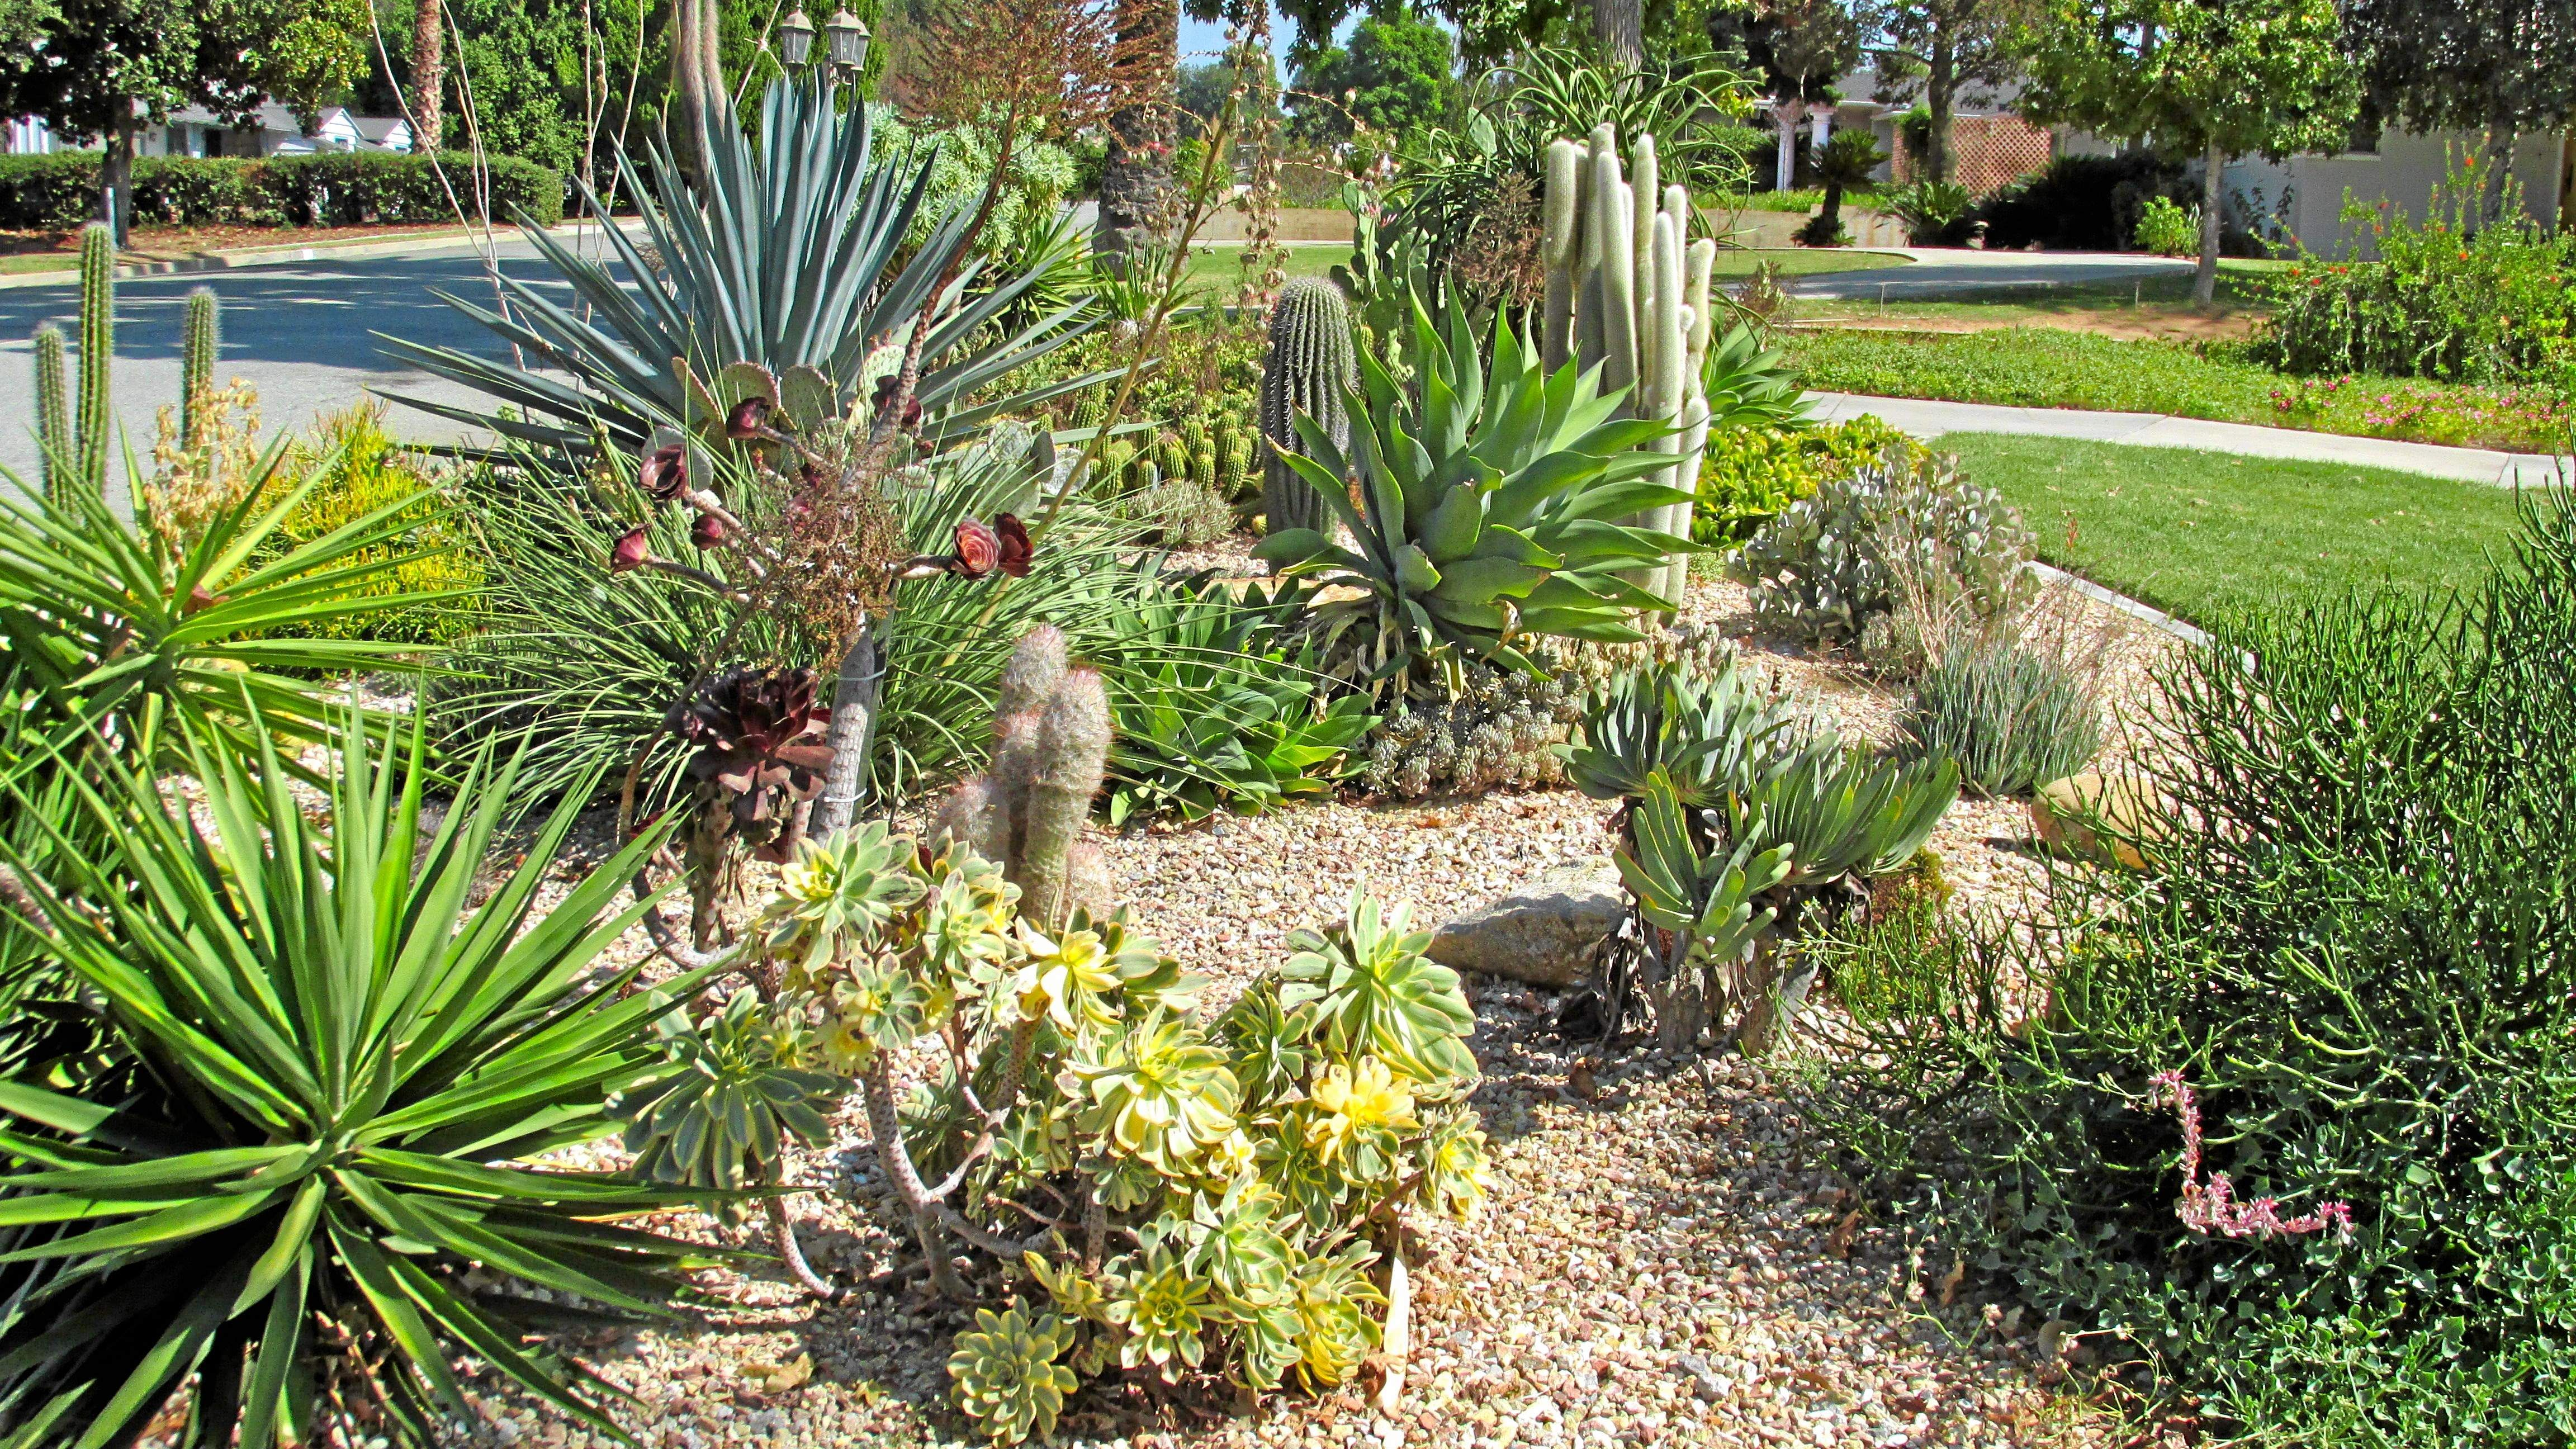 Charming Experts Offer Advice For Drought Tolerant Landscaping In Southern California  | AiDaIa   Gardening